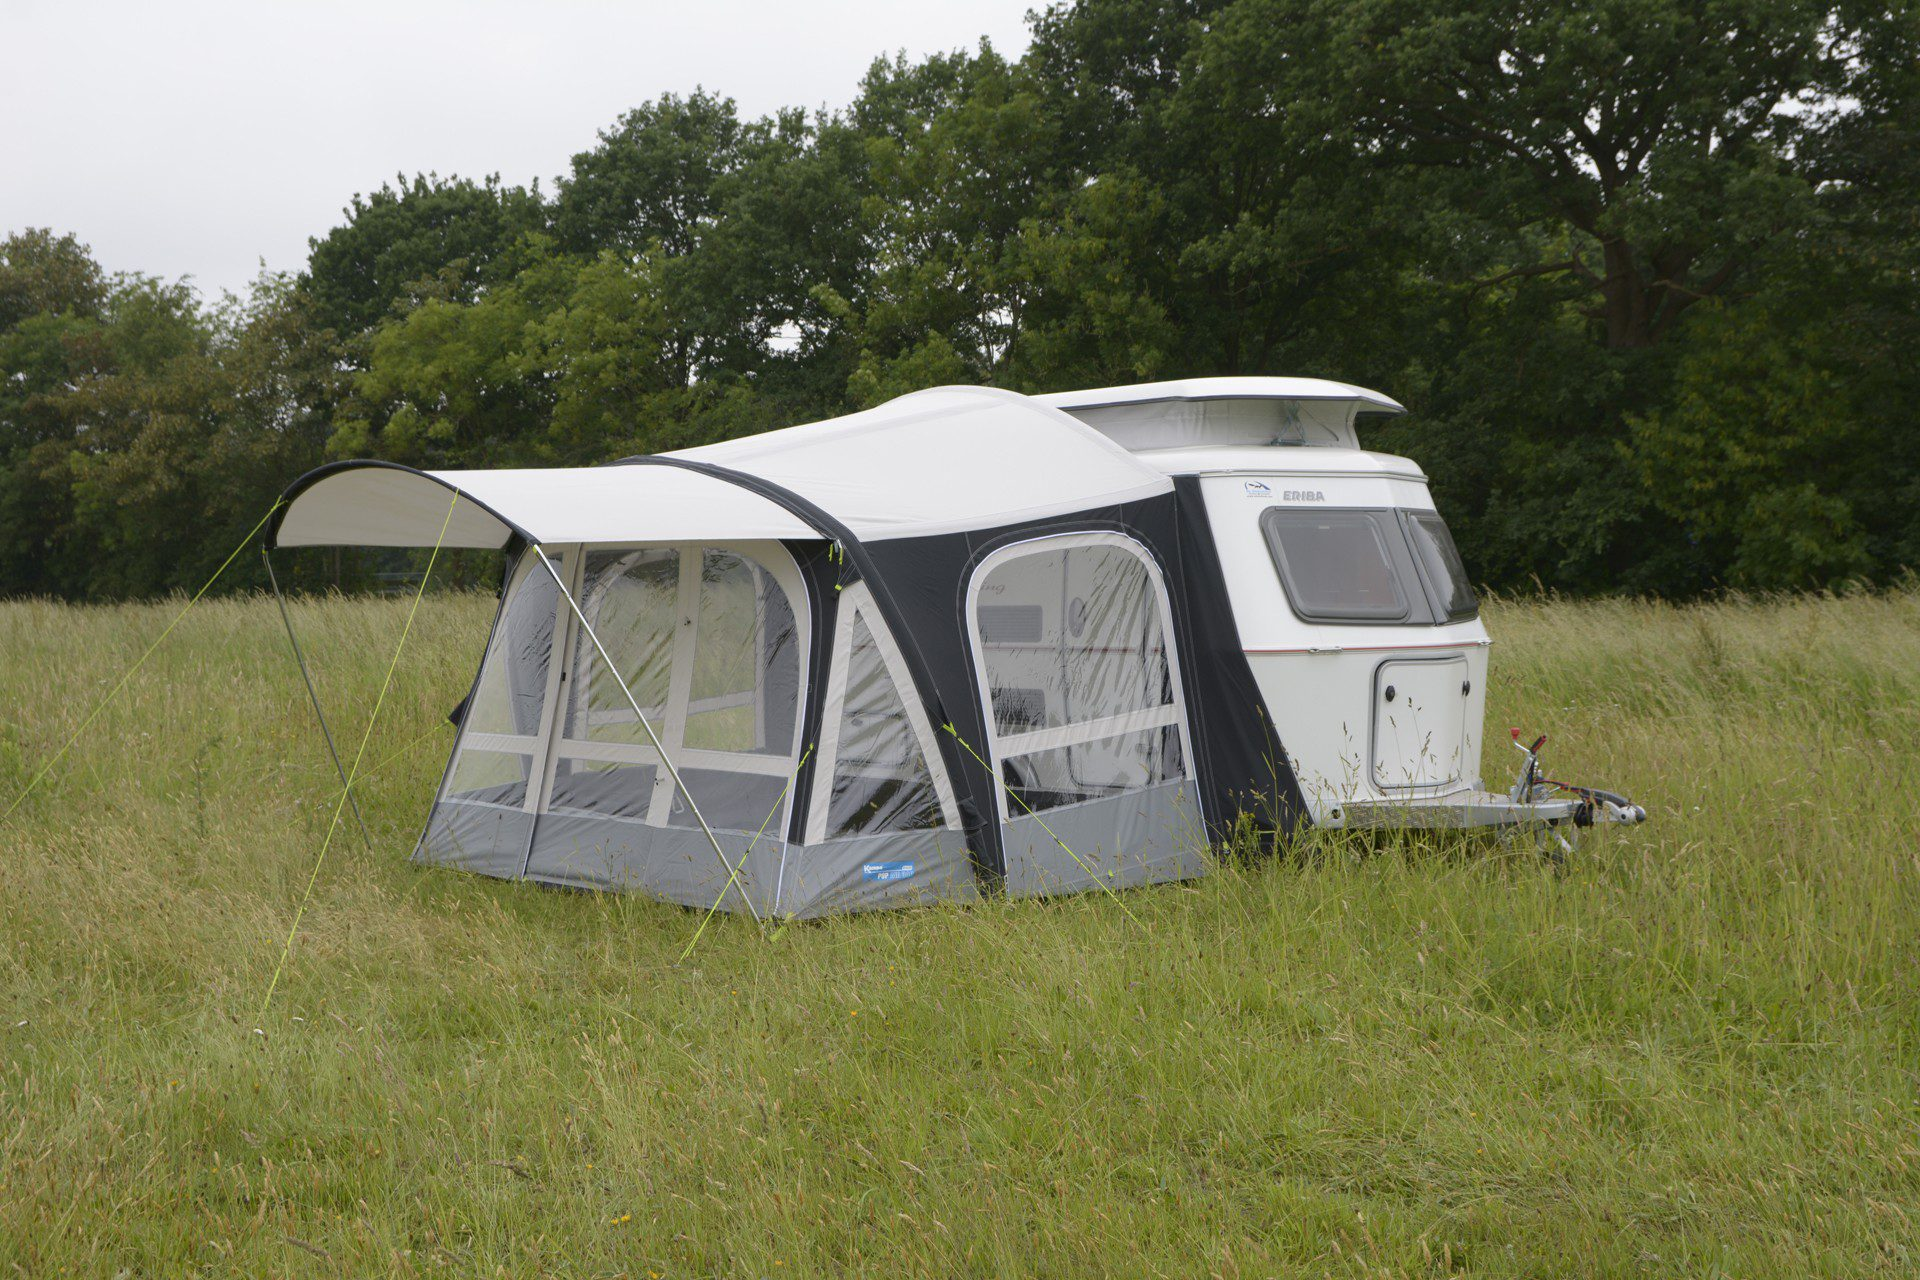 Kampa Pop Air Pro 340 Eriba Caravan Awning 2019 1